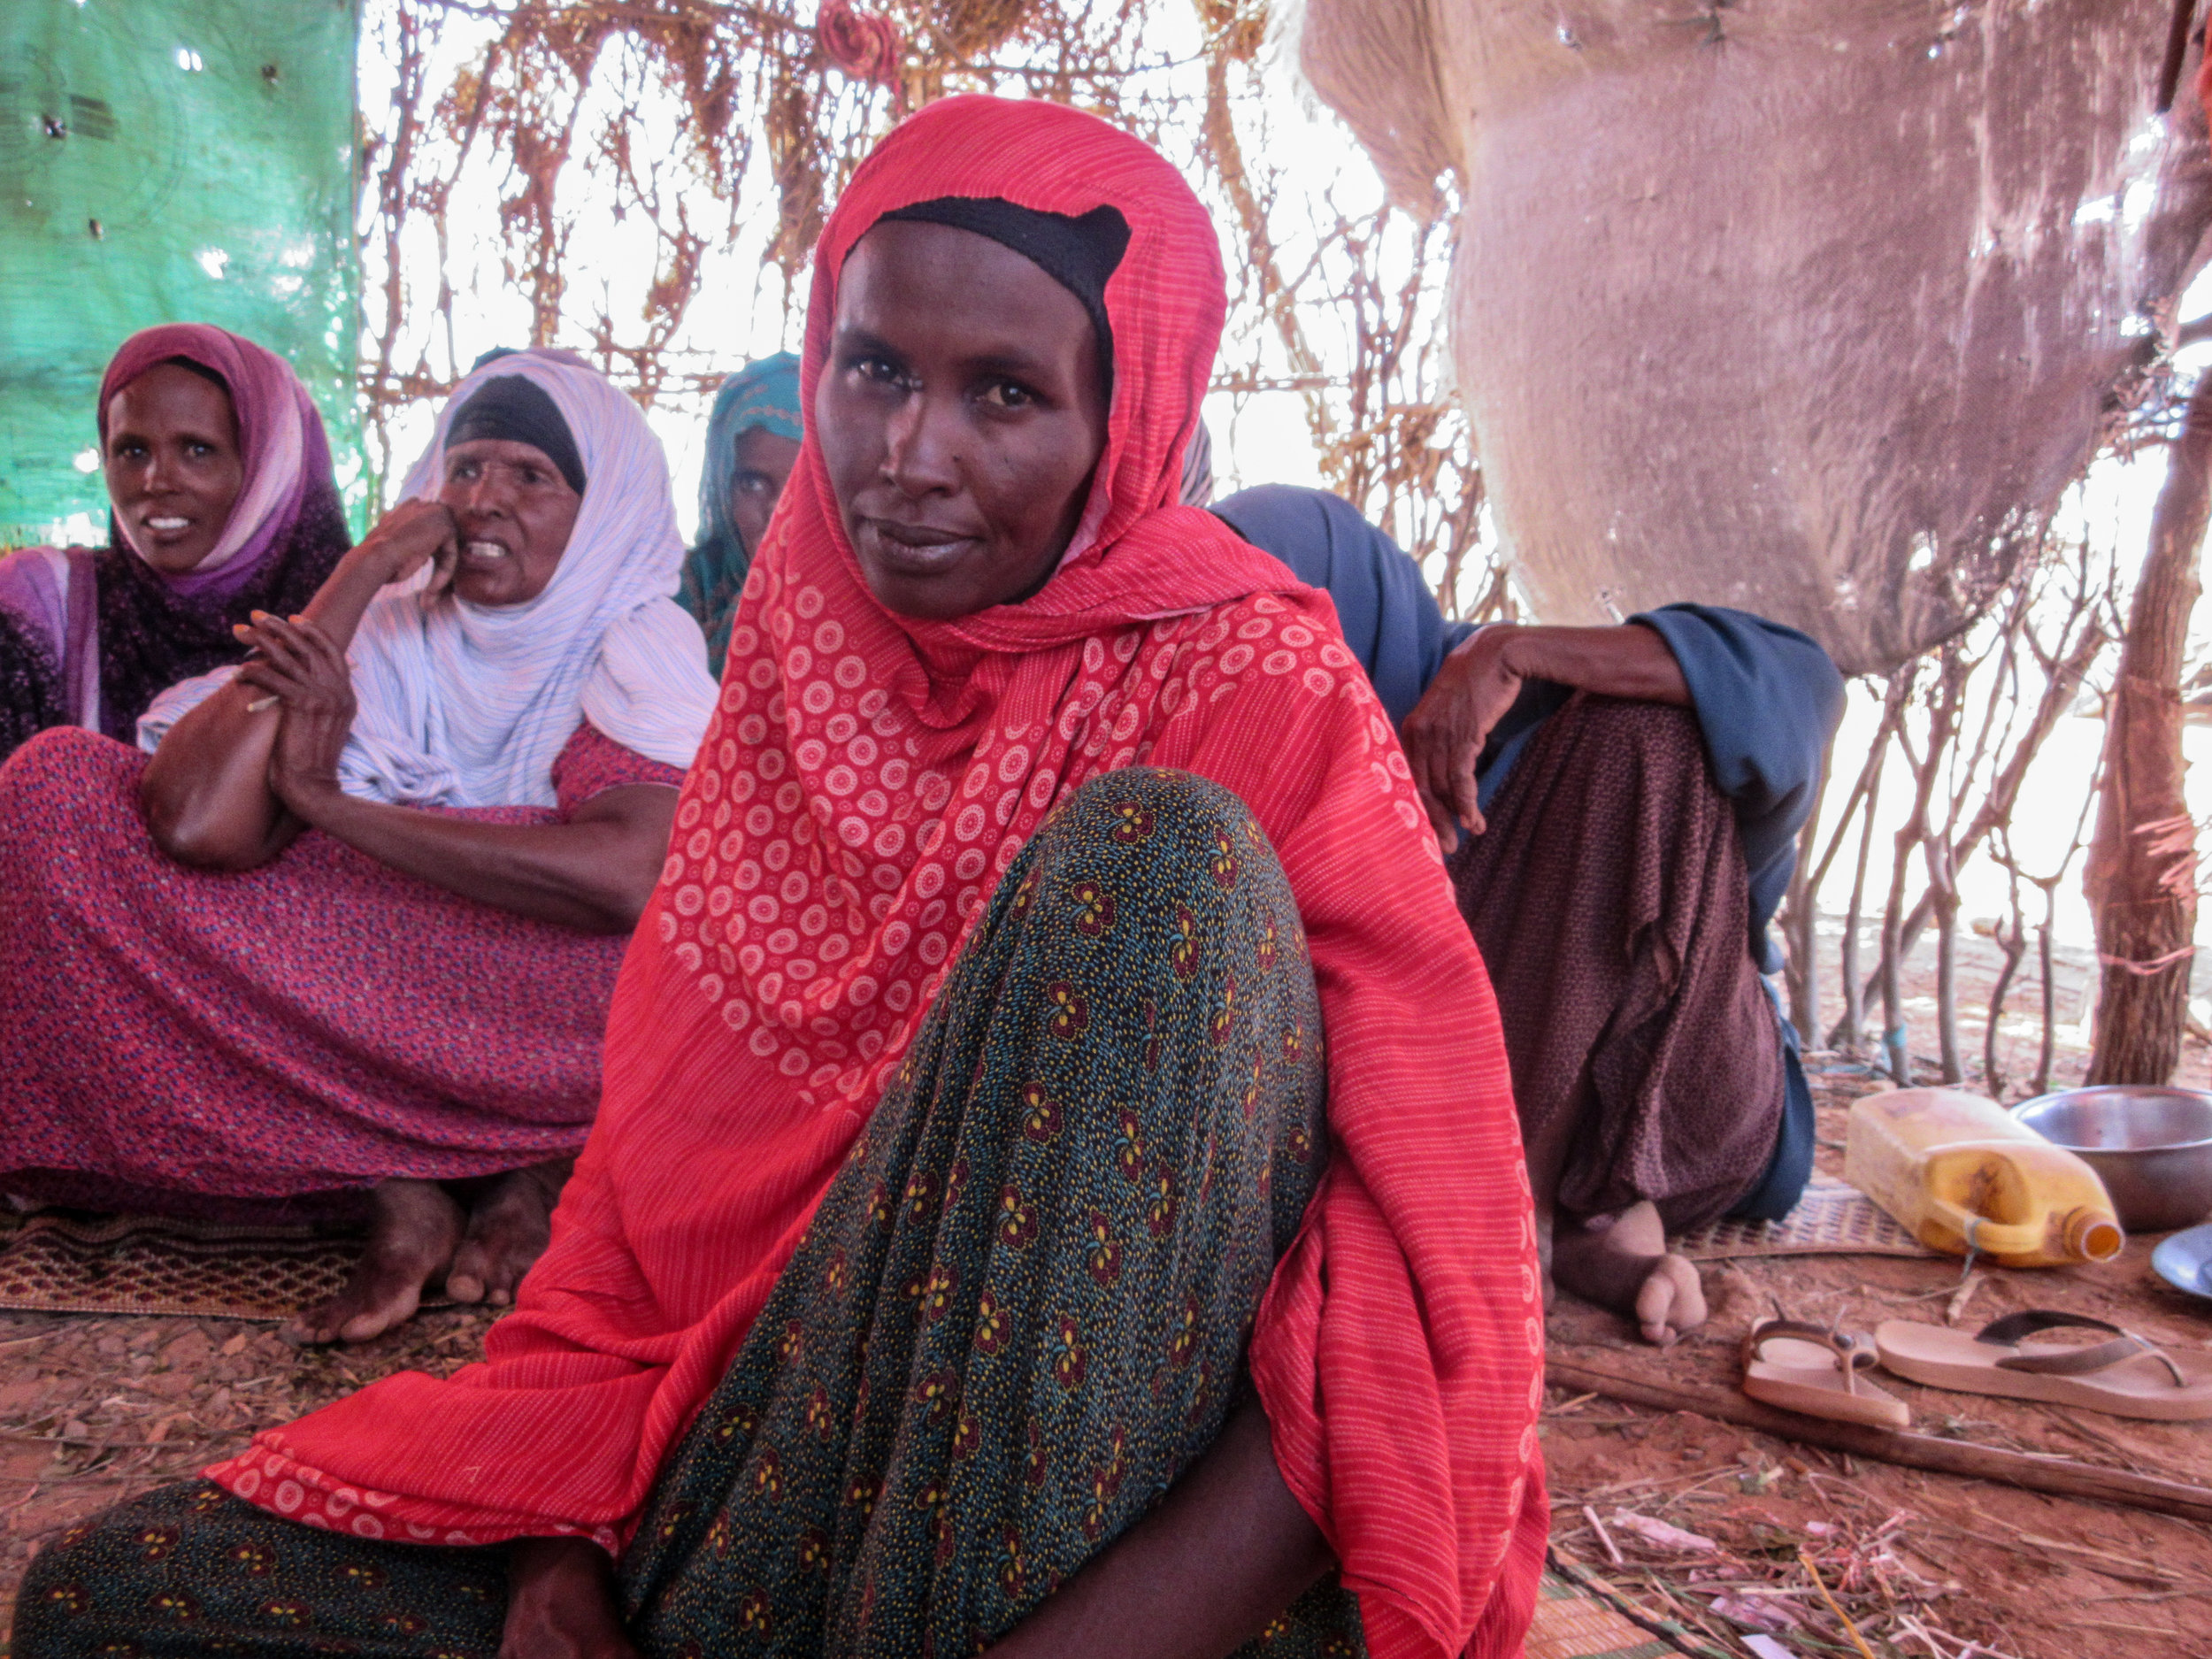 Women displaced by drought at the Elan IDP site in Ethiopia. Photo by Refugees International.